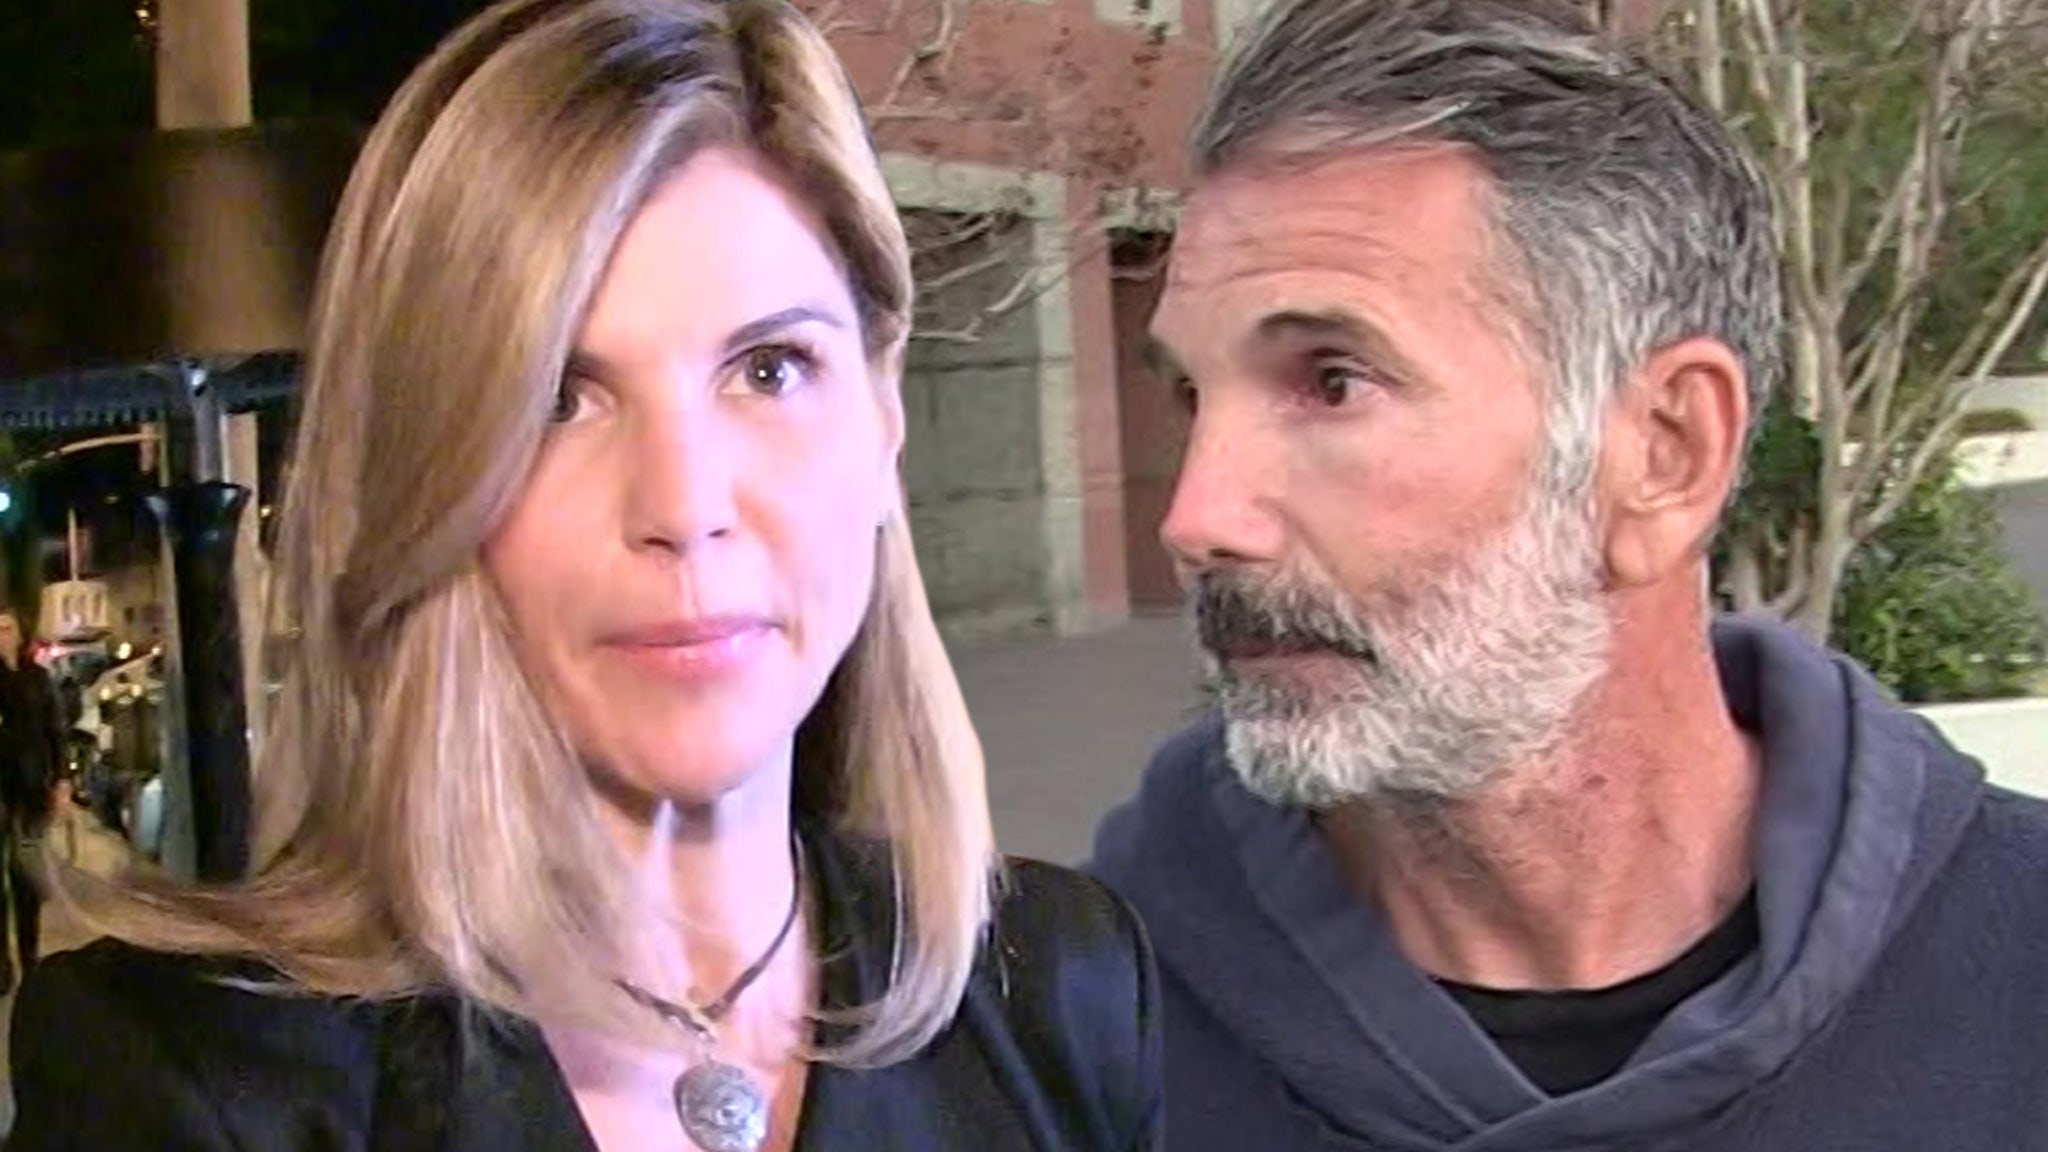 Lori Loughlin & Mossimo Giannulli Both Behind Bars For Thanksgiving